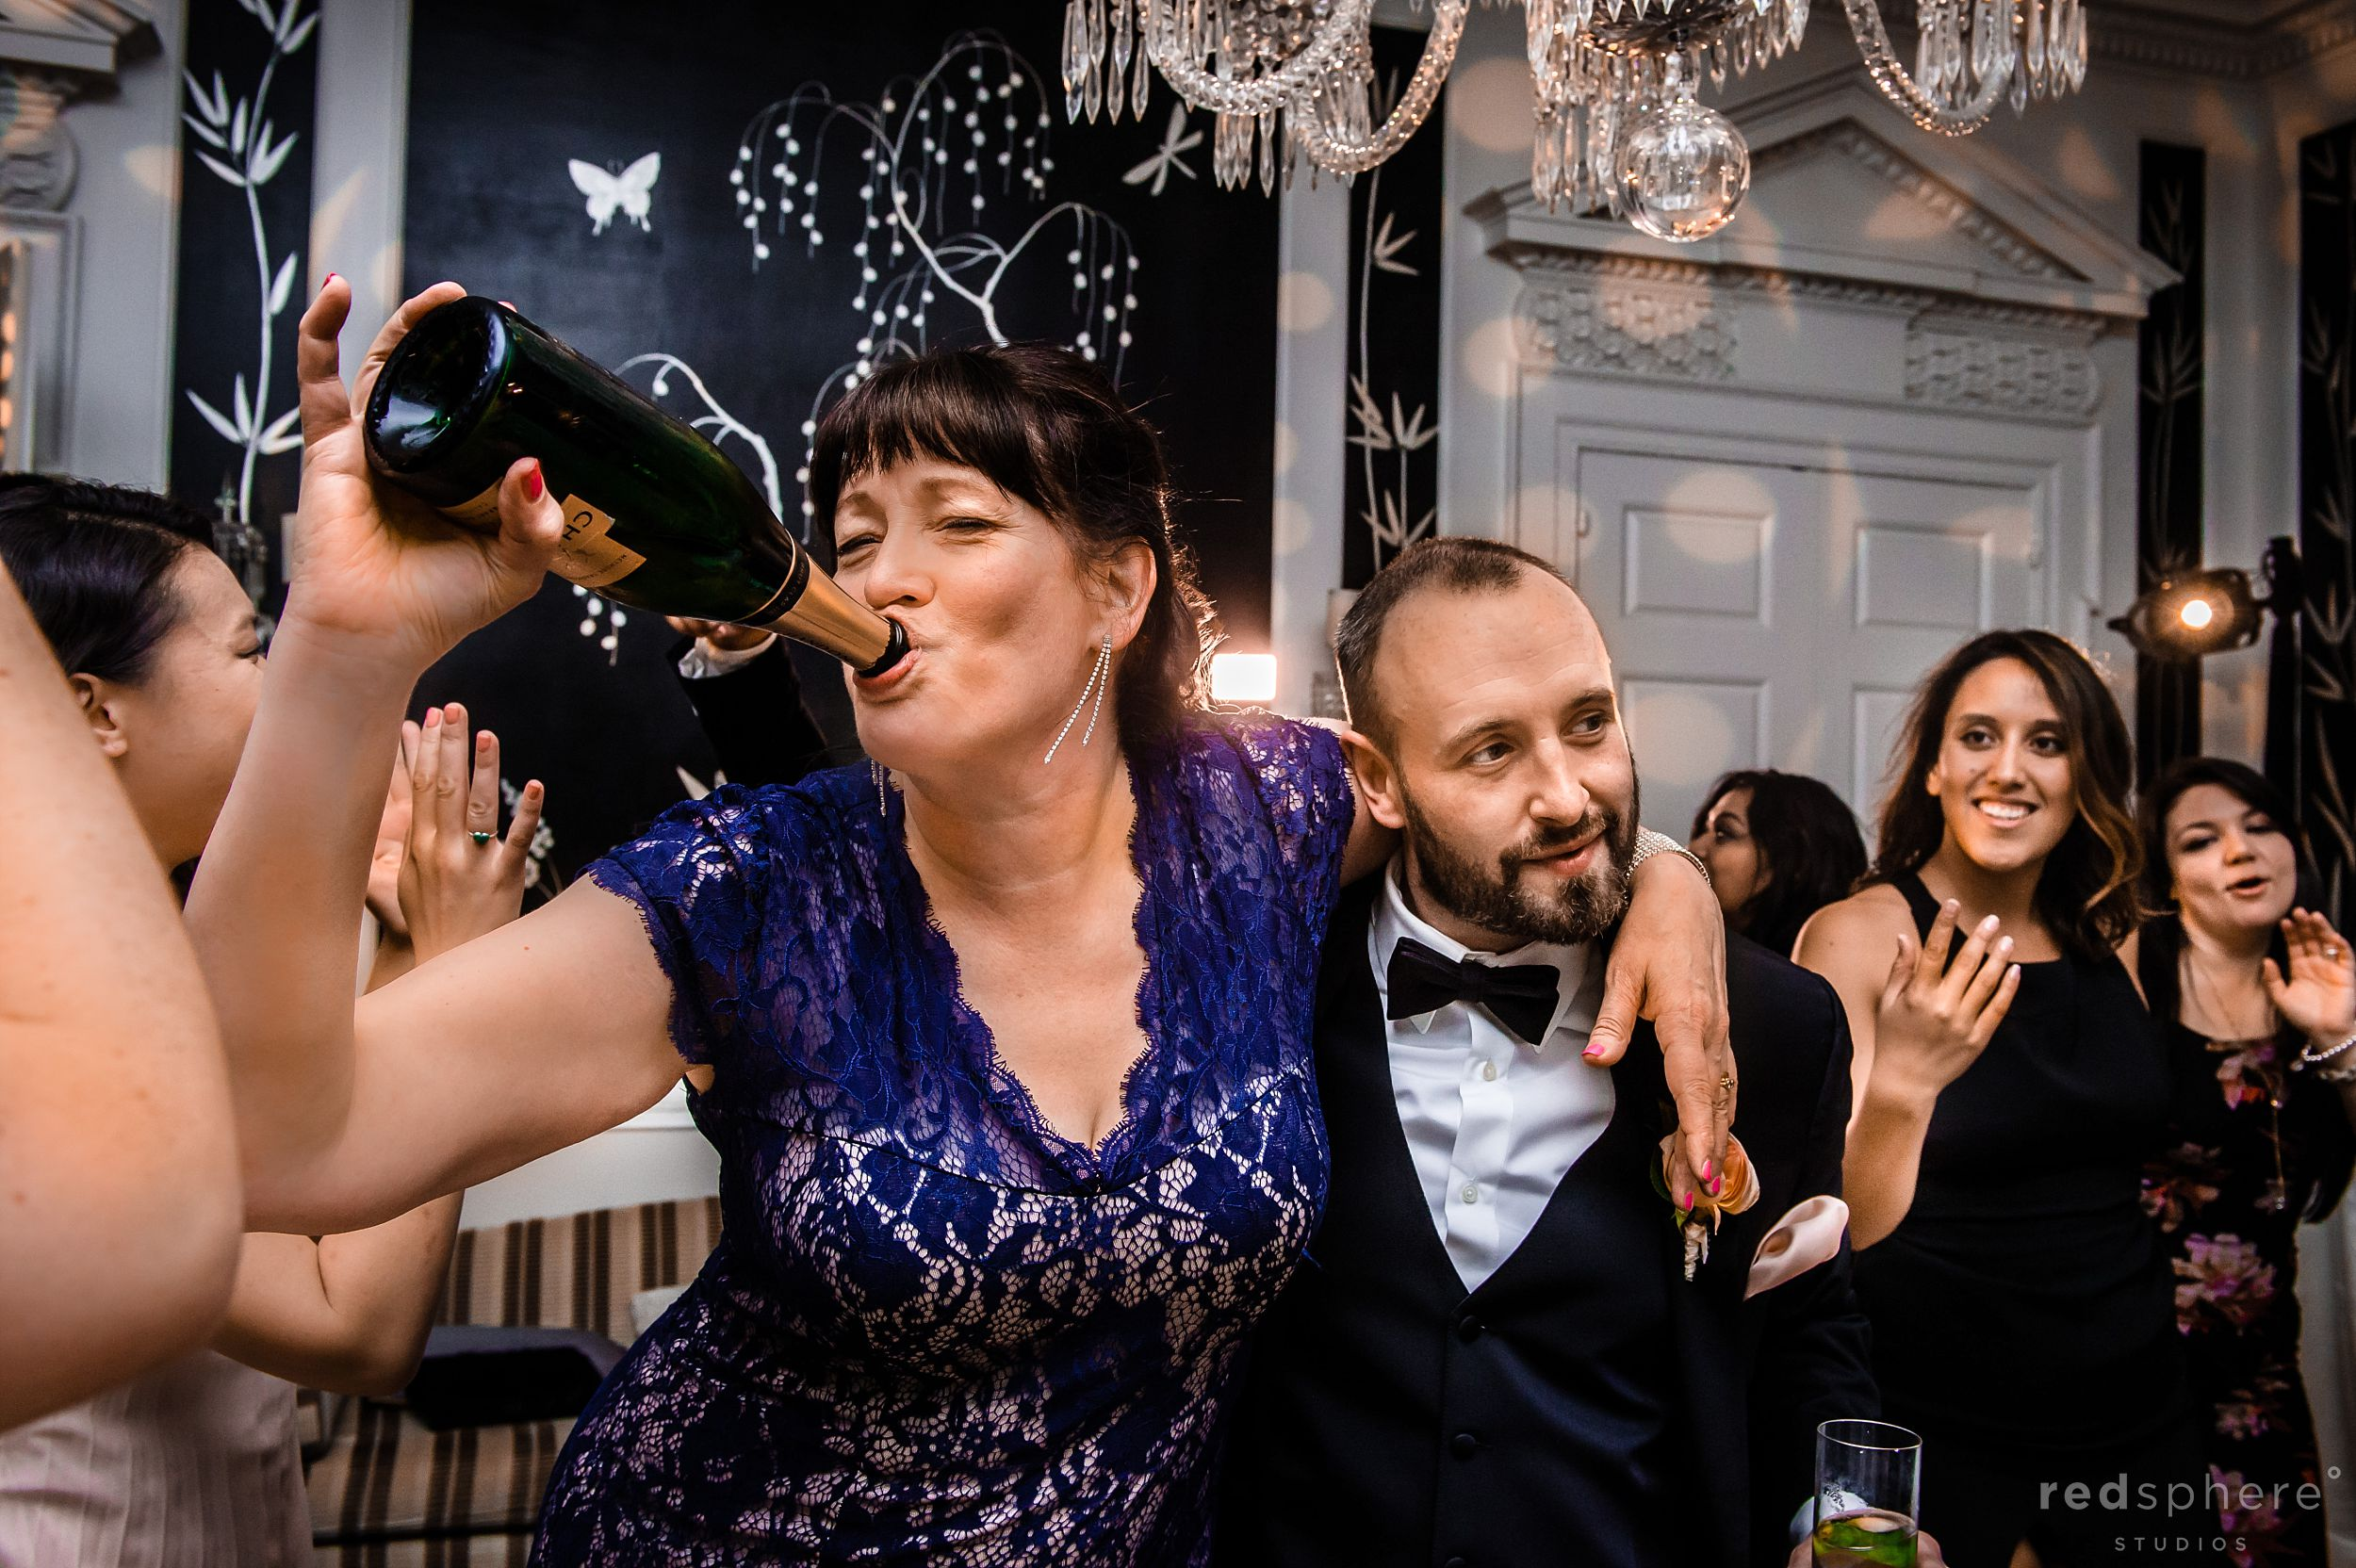 Groom and His Friend Partying at Fairmont Hotel Wedding After Party